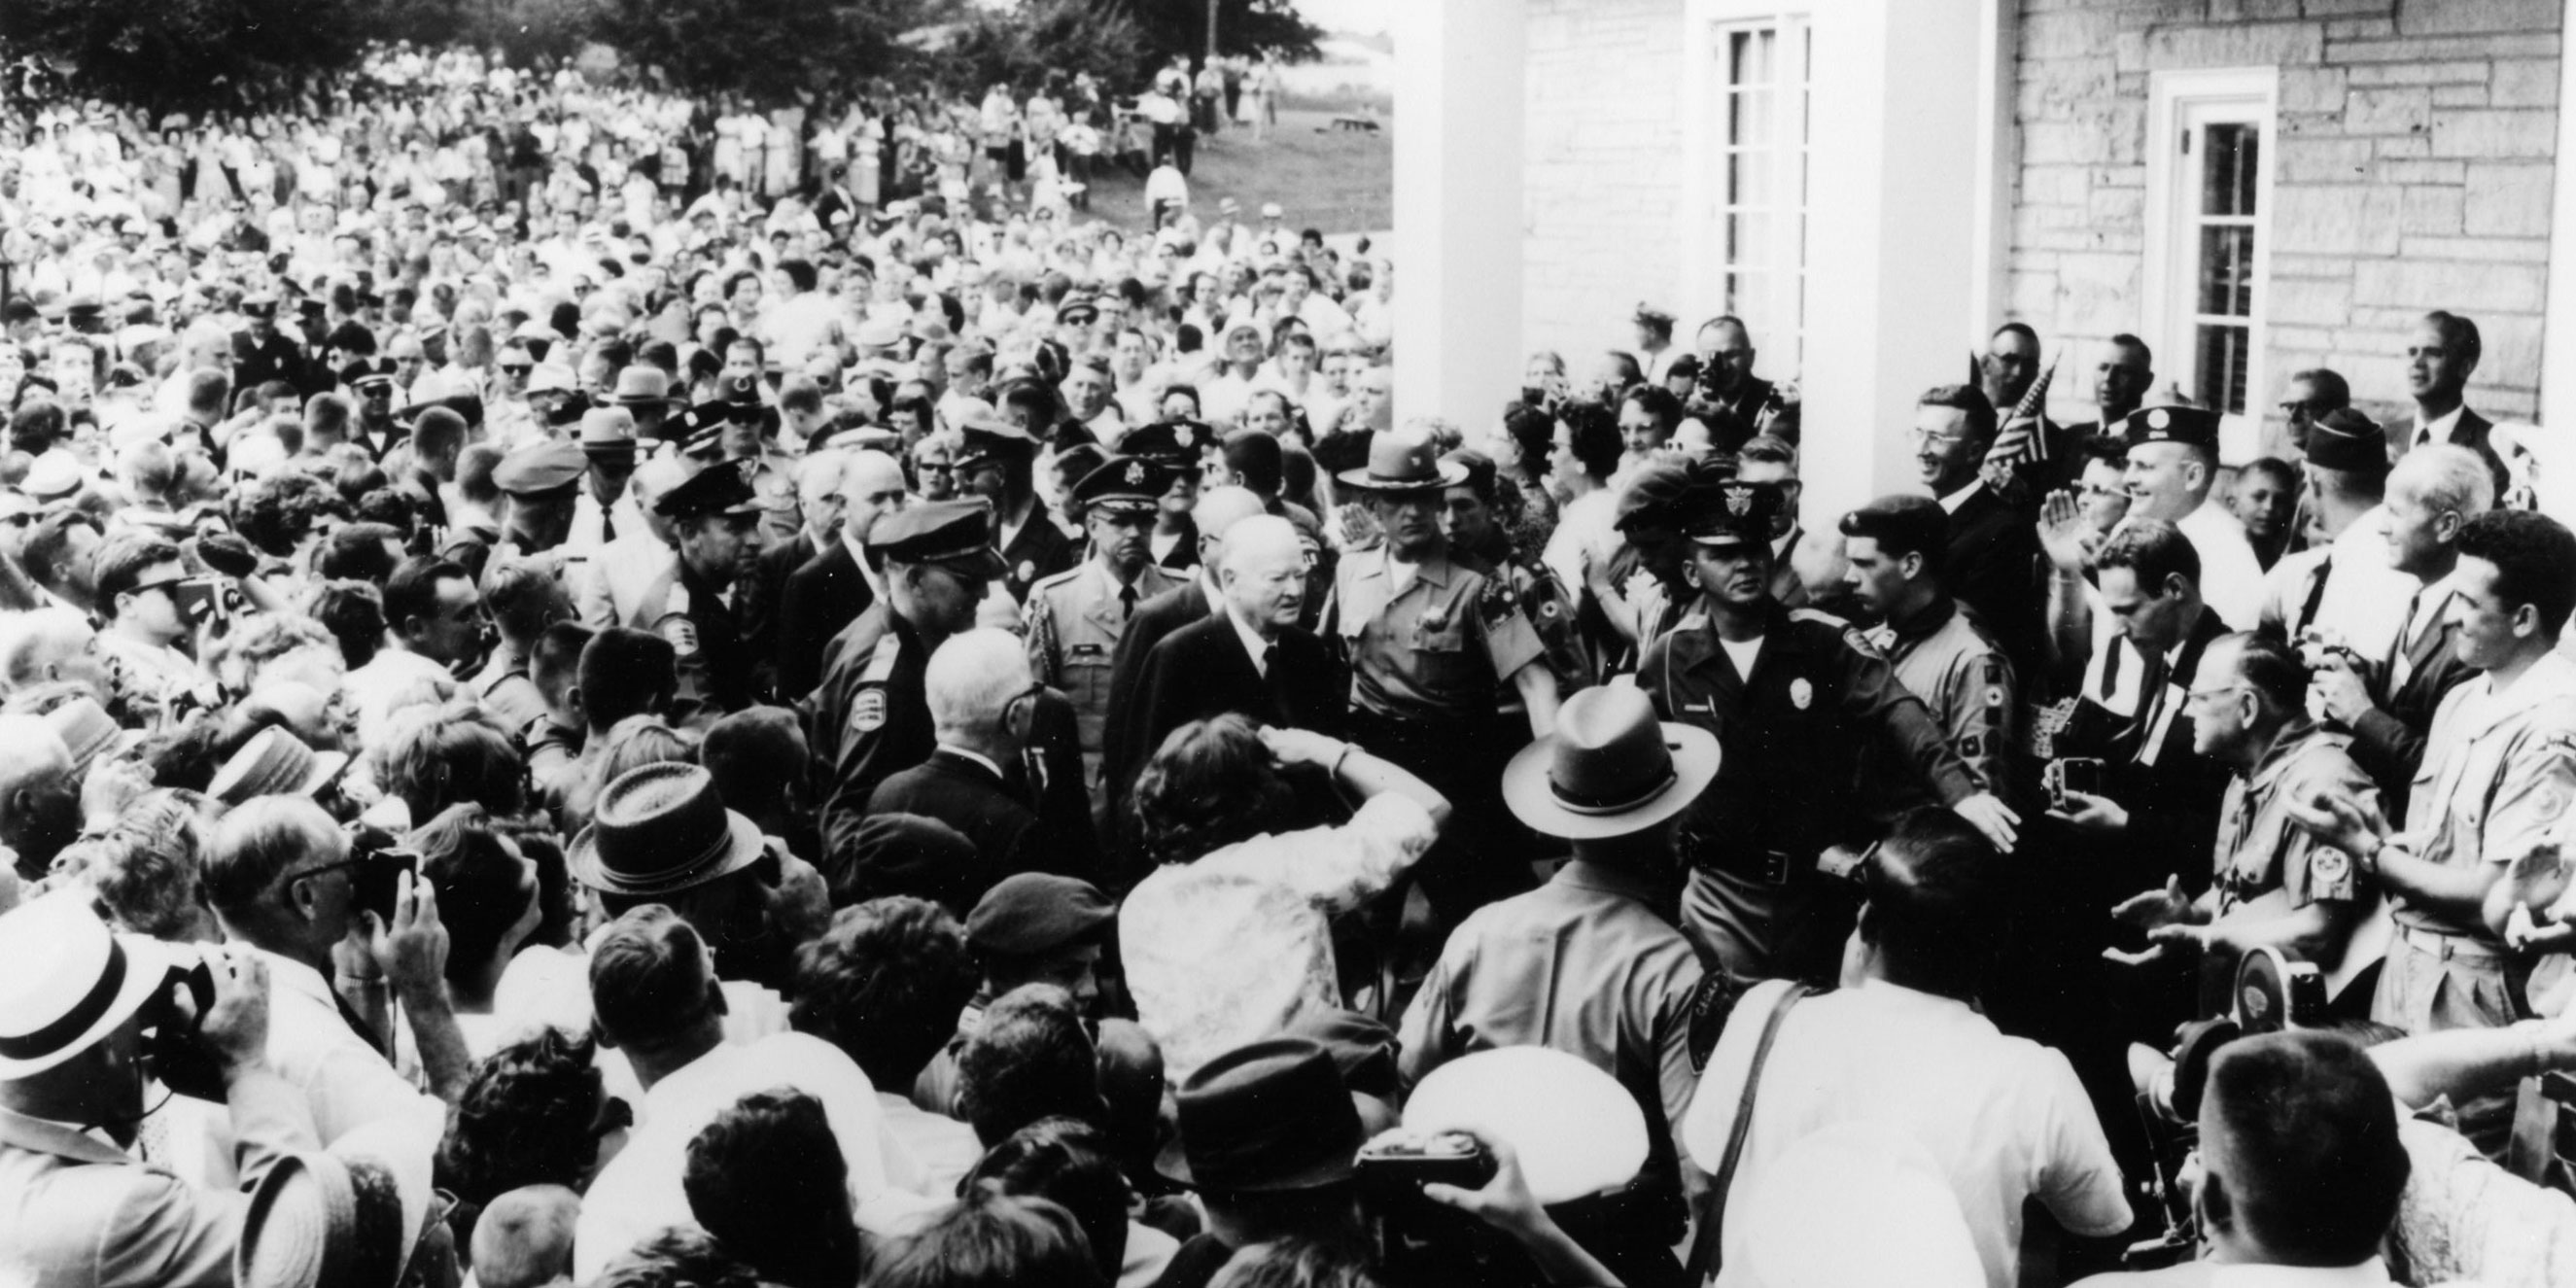 A large crowd surrounds several men in front of a stone museum with white columns. at the Hoover museum dedication, 1962